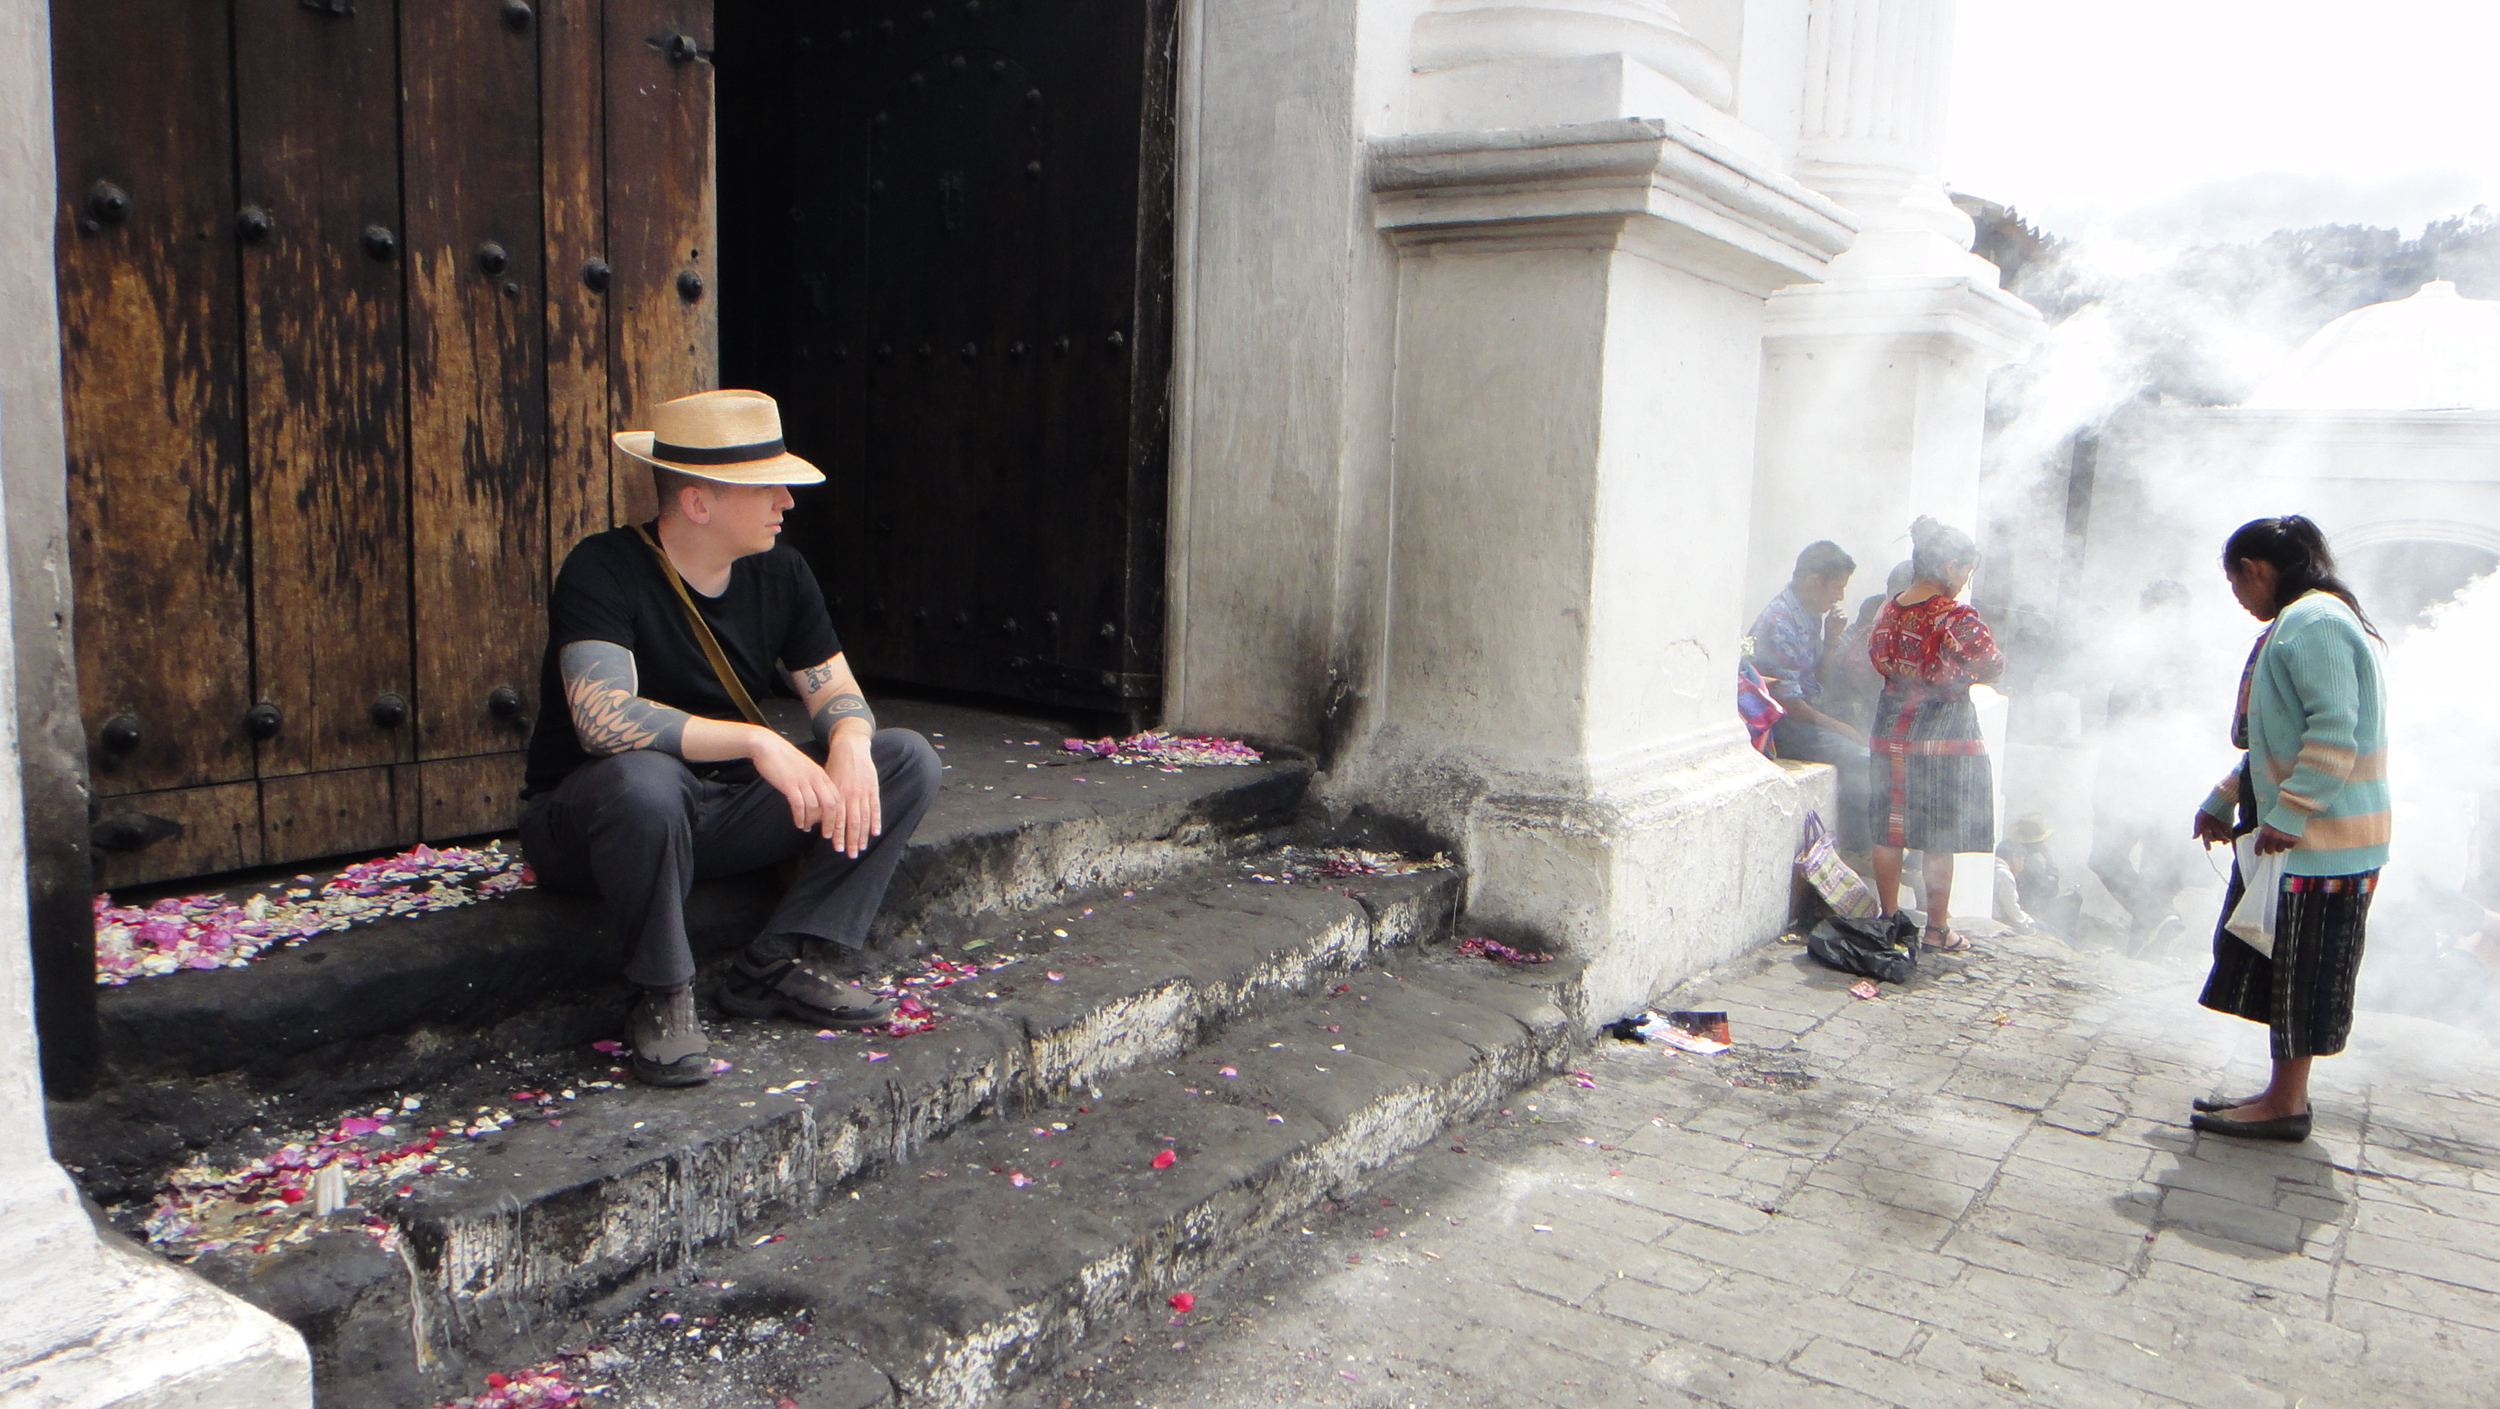 Copal being burned outside a church in Chichicastenango, Guatemala where Mayan and Catholic traditions mix seamlessly.